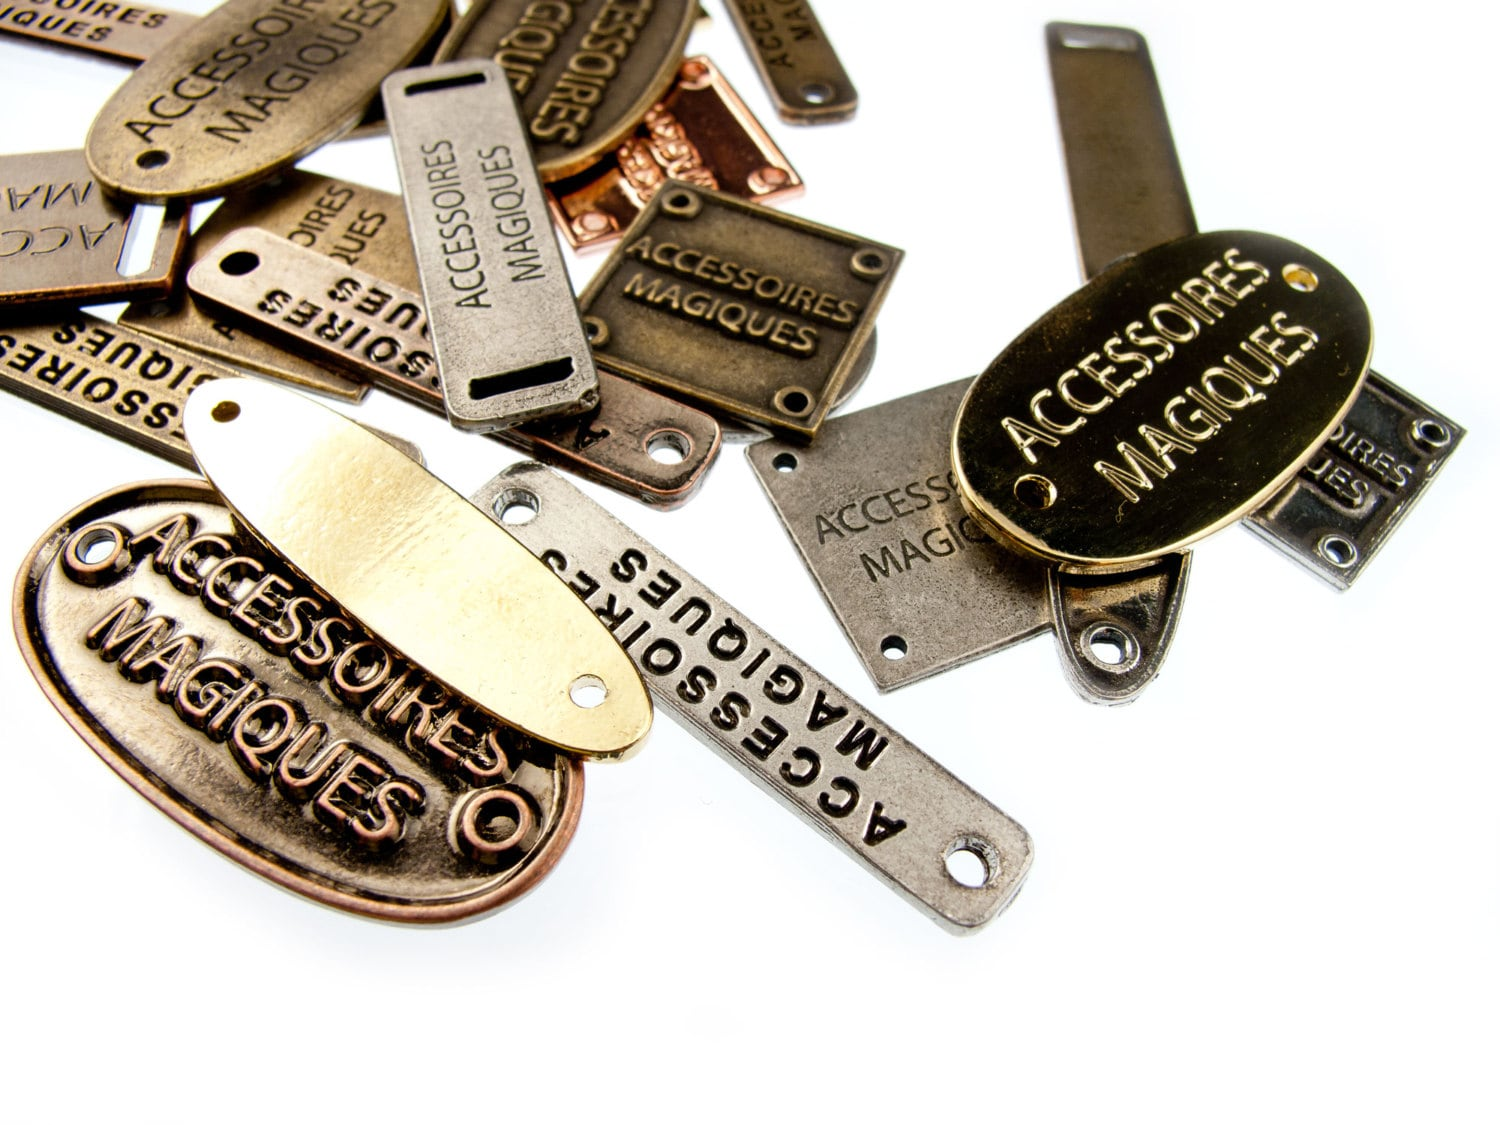 Custom Personalized Metal Clothing Tags 100pcs Made To